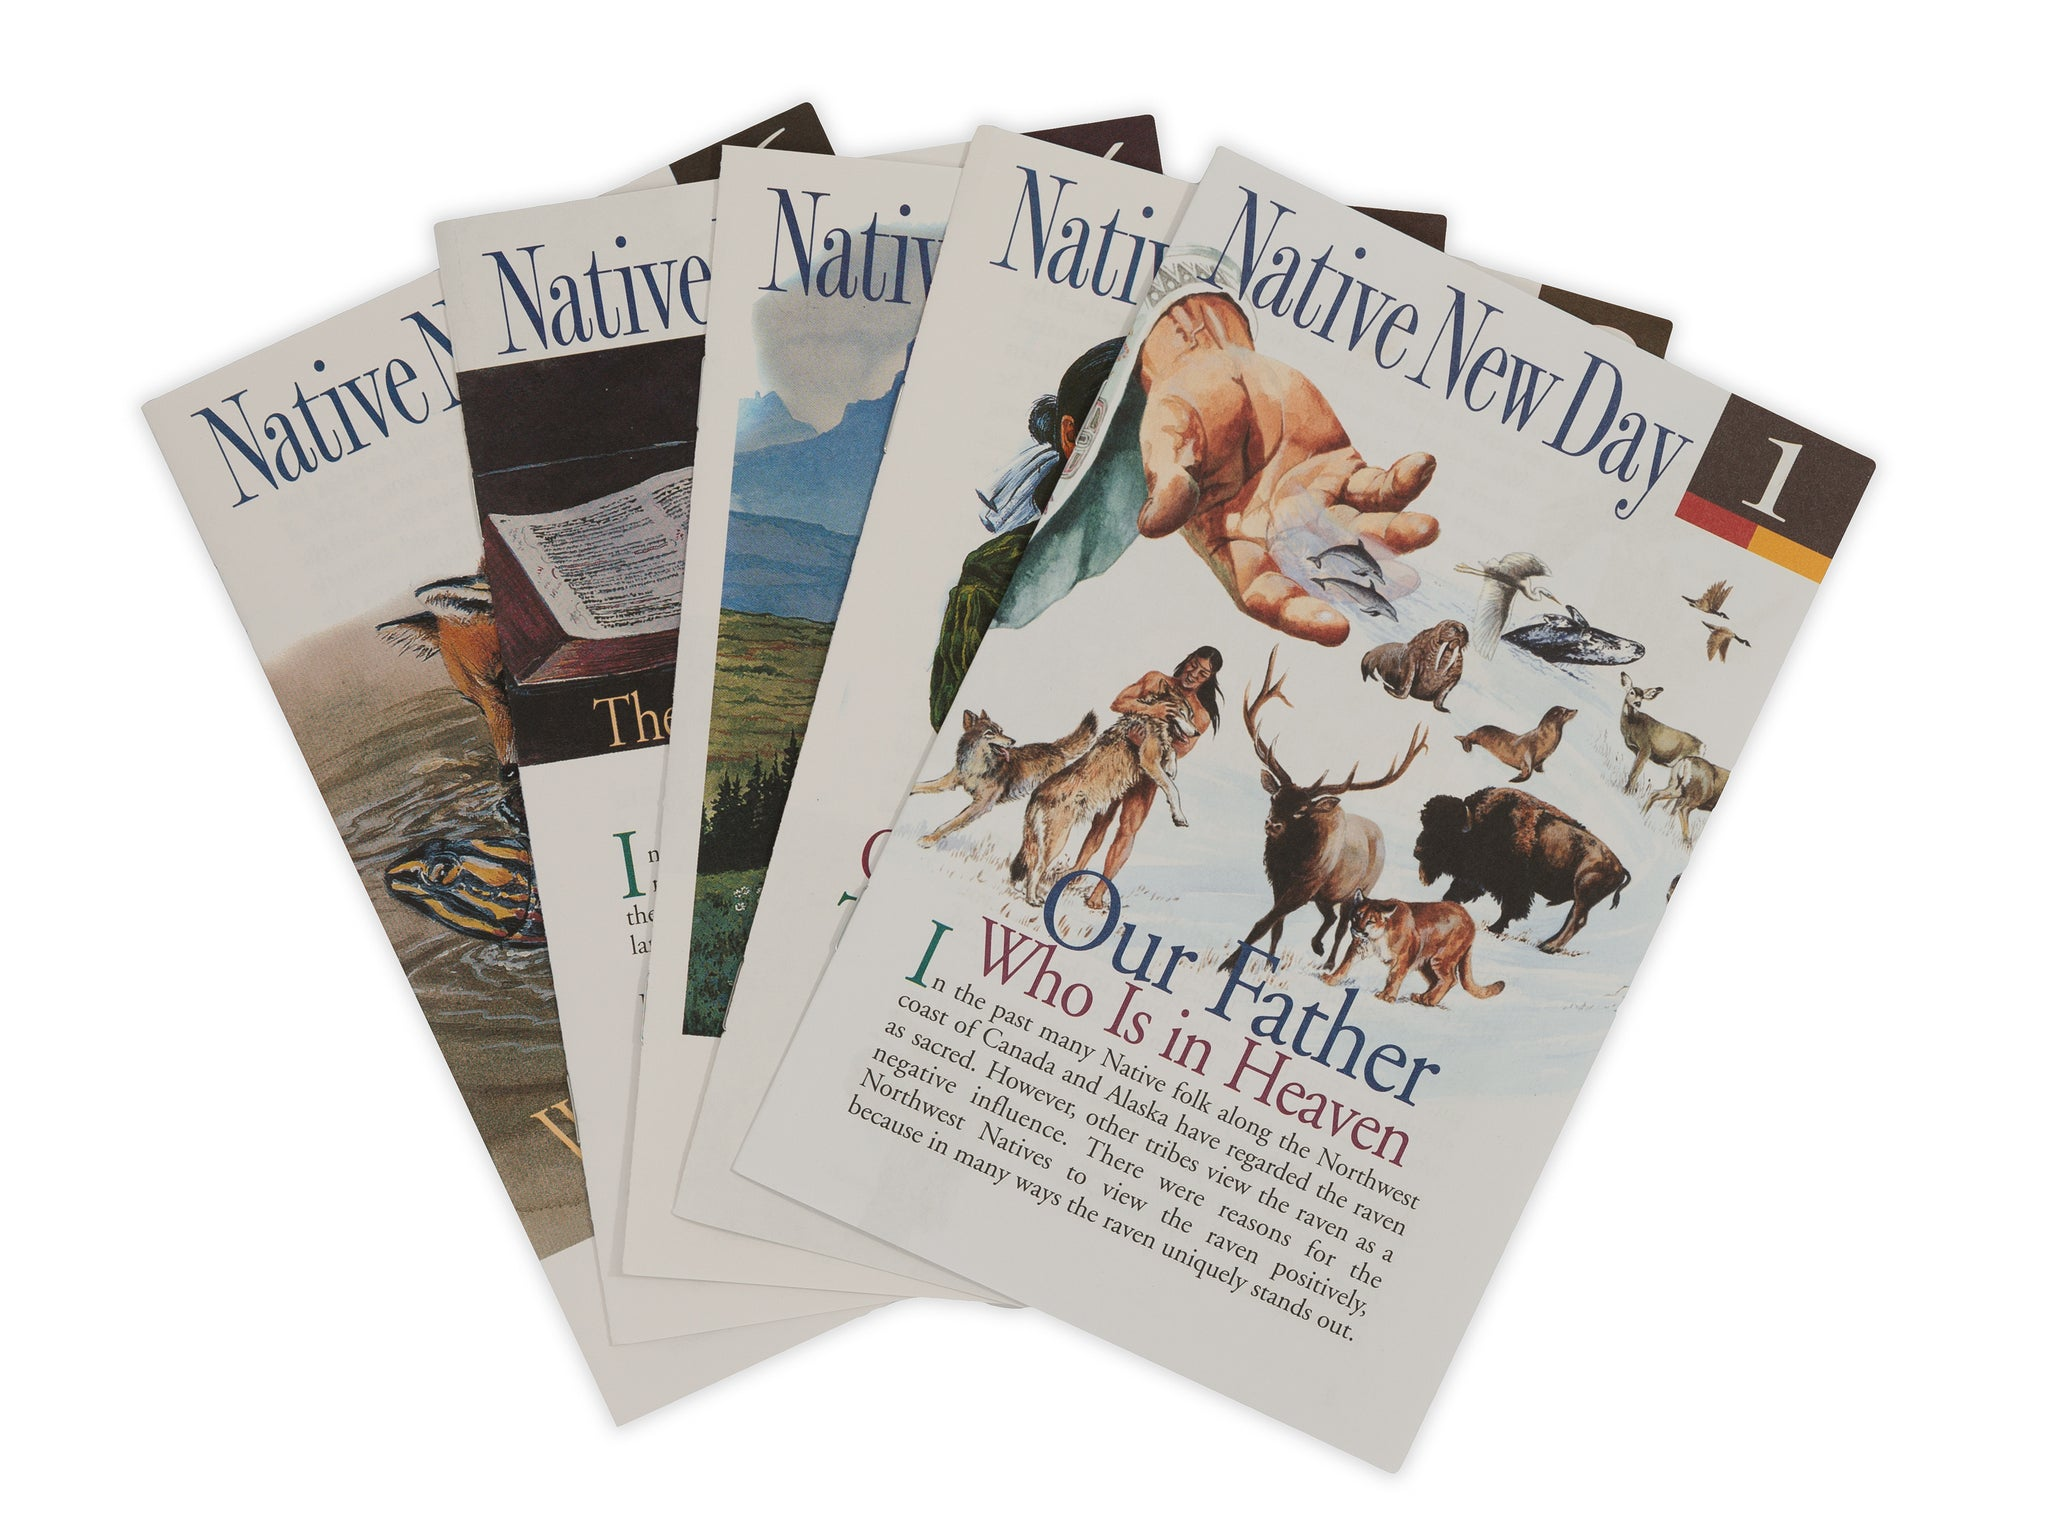 Native New Day Bible Study Guides - Full Set